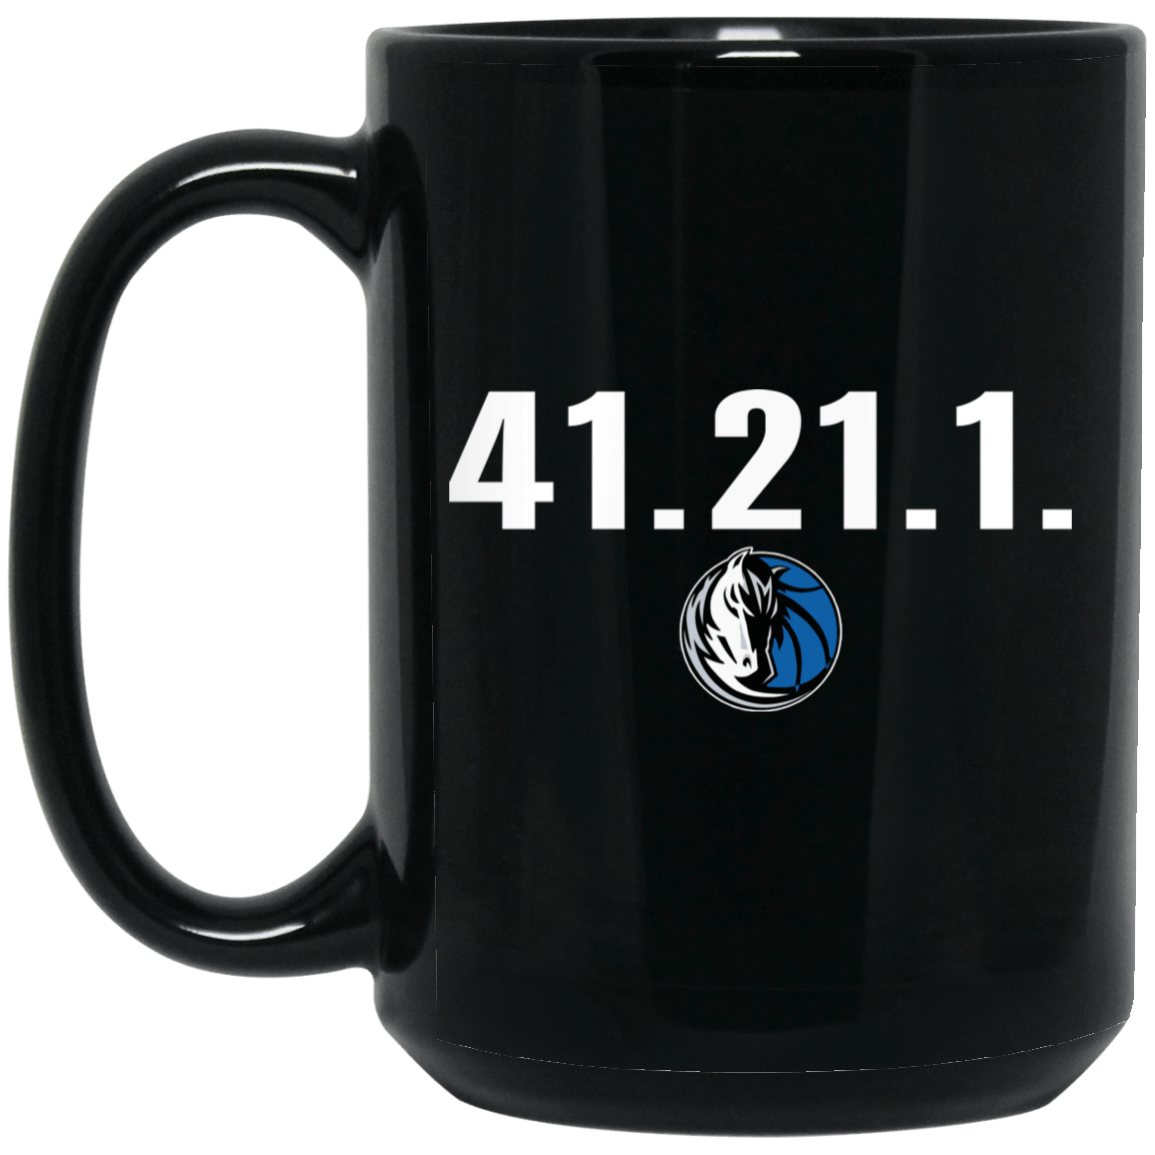 41.21.1 Dallas Mavericks Mug 1066-10182-73180889-49311 - Tee Ript